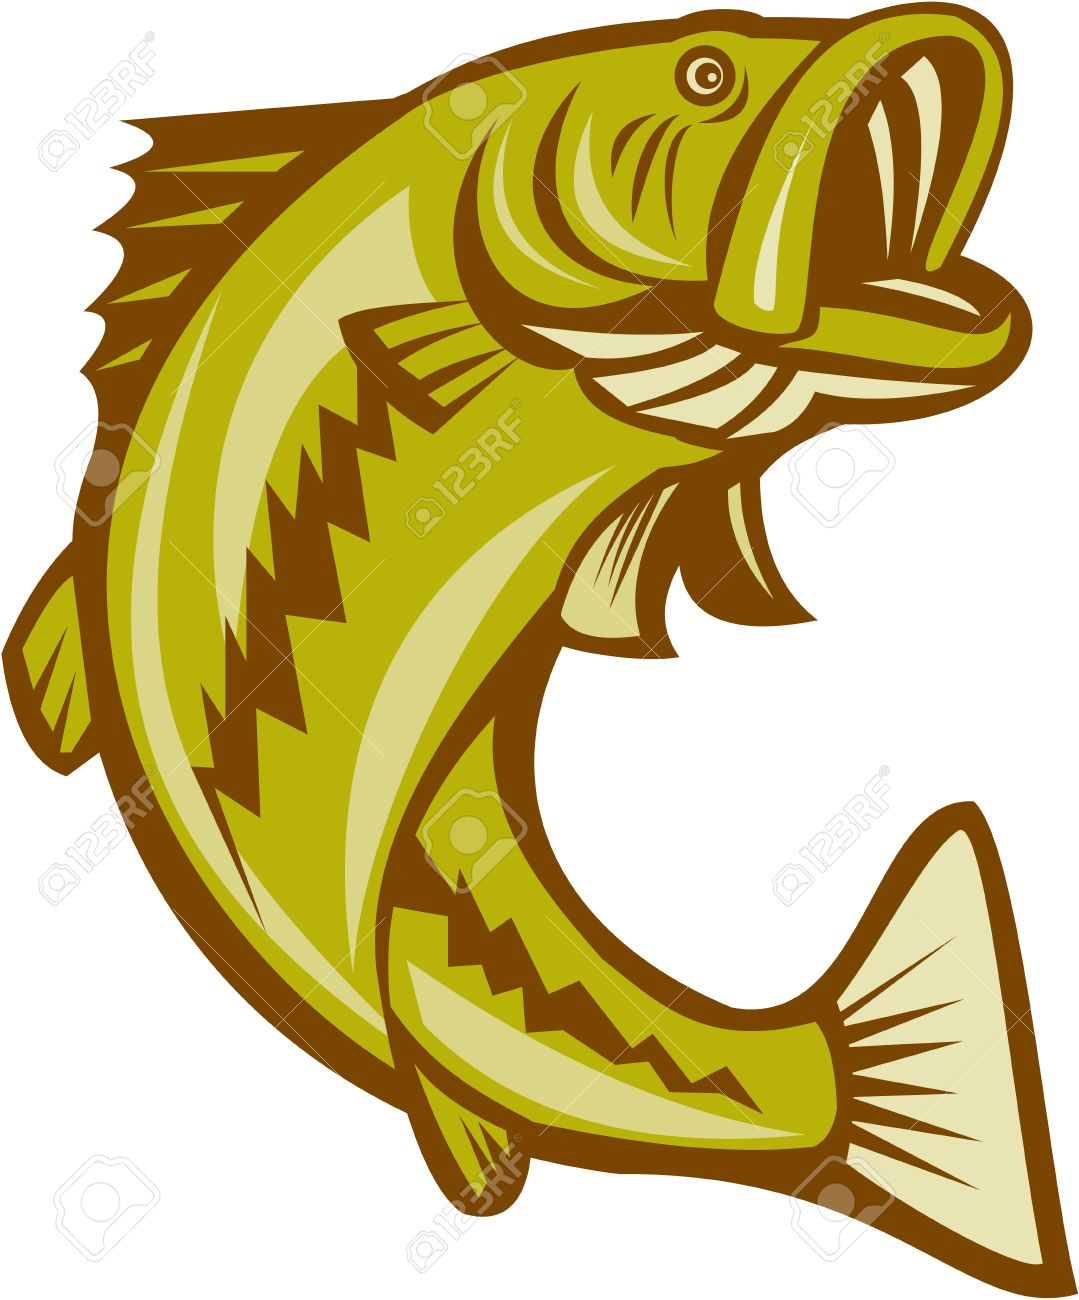 Illustration of a largemouth bass fish jumping done in cartoon style on isolated white background. - 31296796